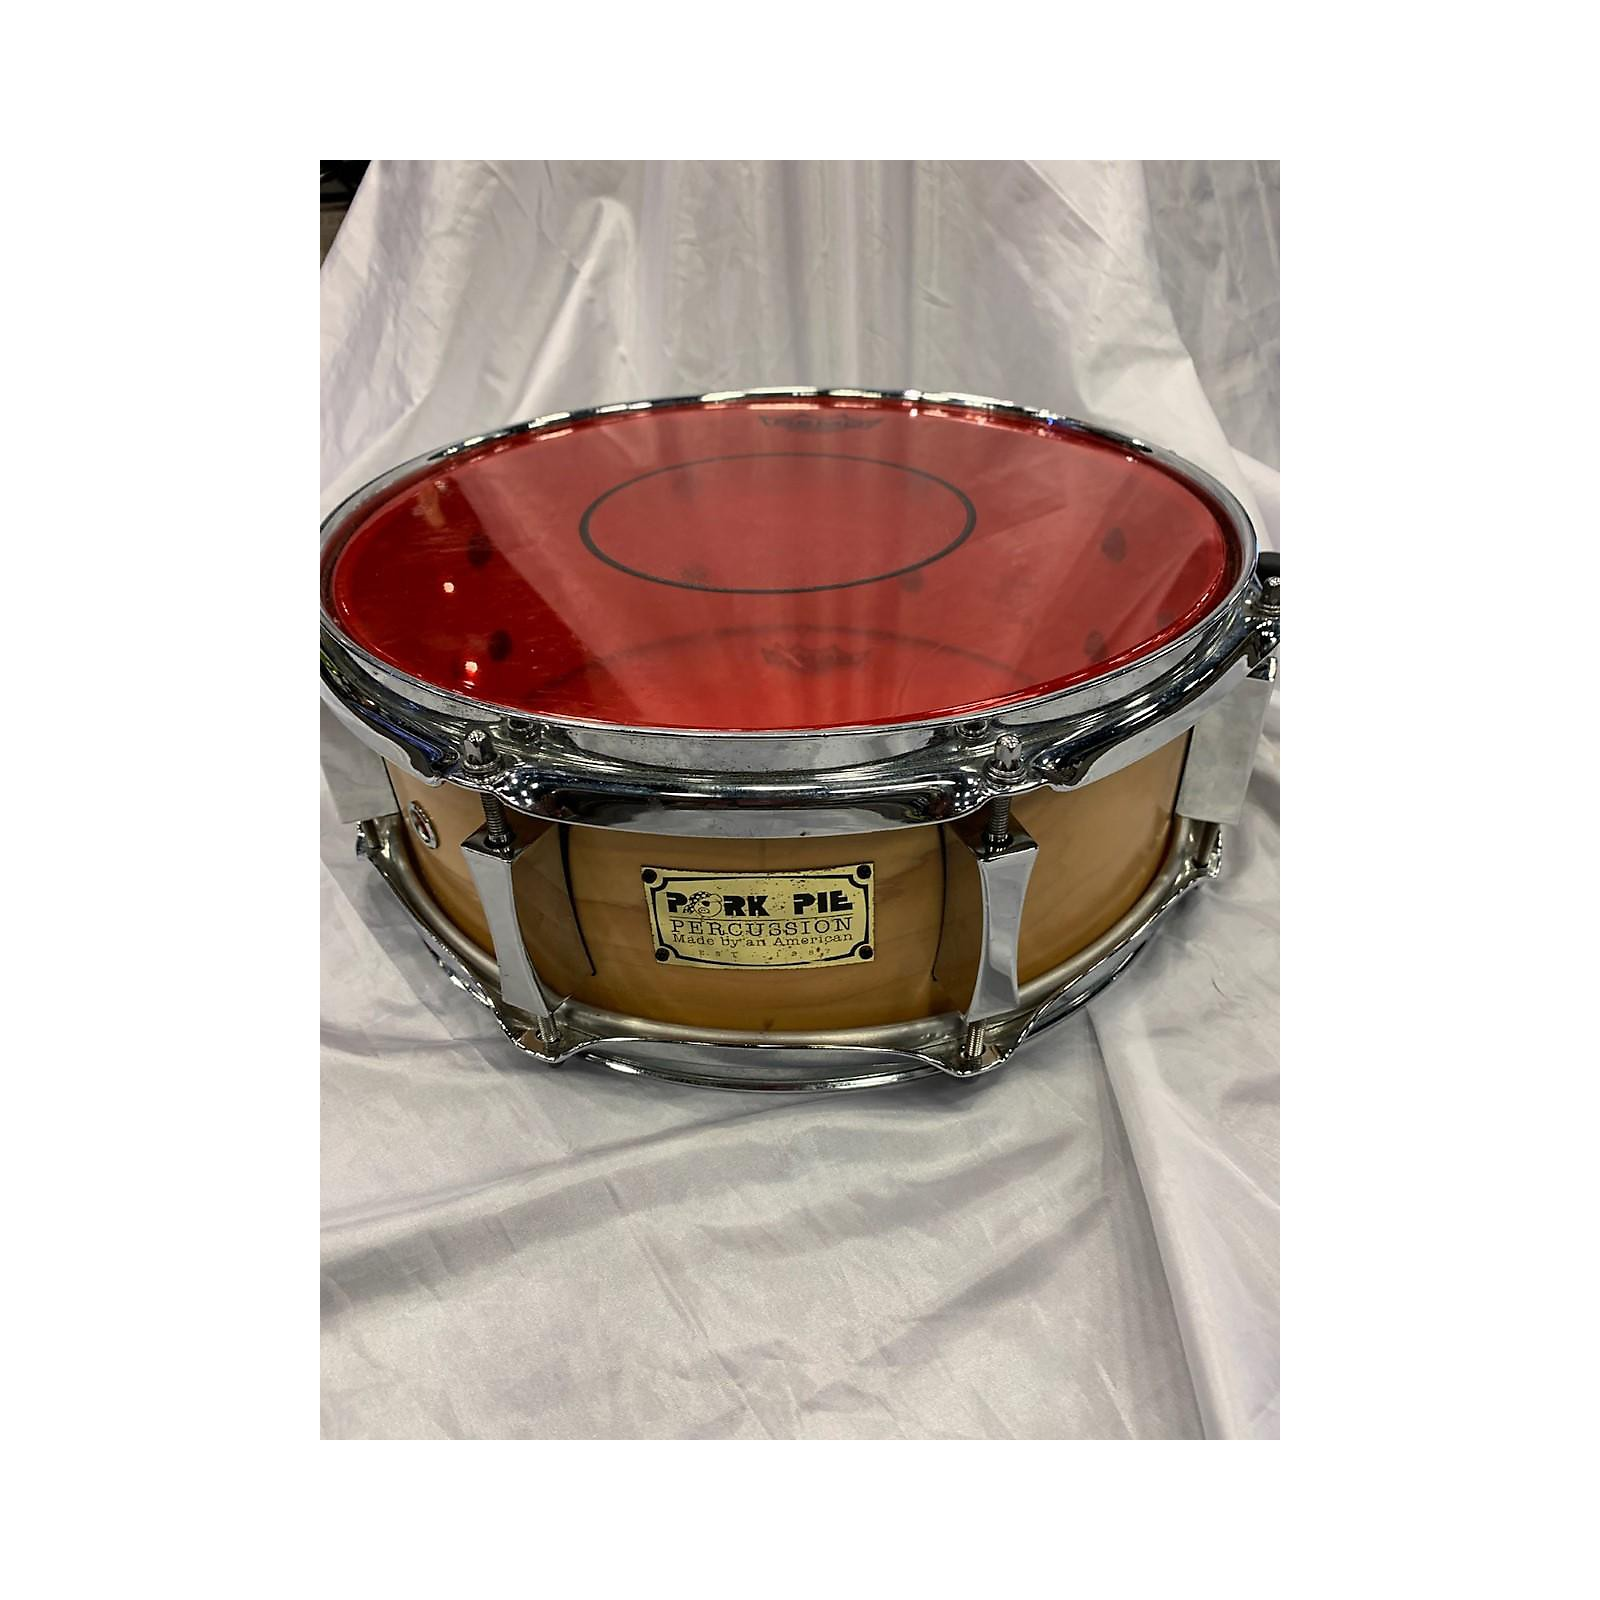 In Store Used Used Pork Pie Percussion 5X13 Little Squealer Snare Drum Drum Natural Maple